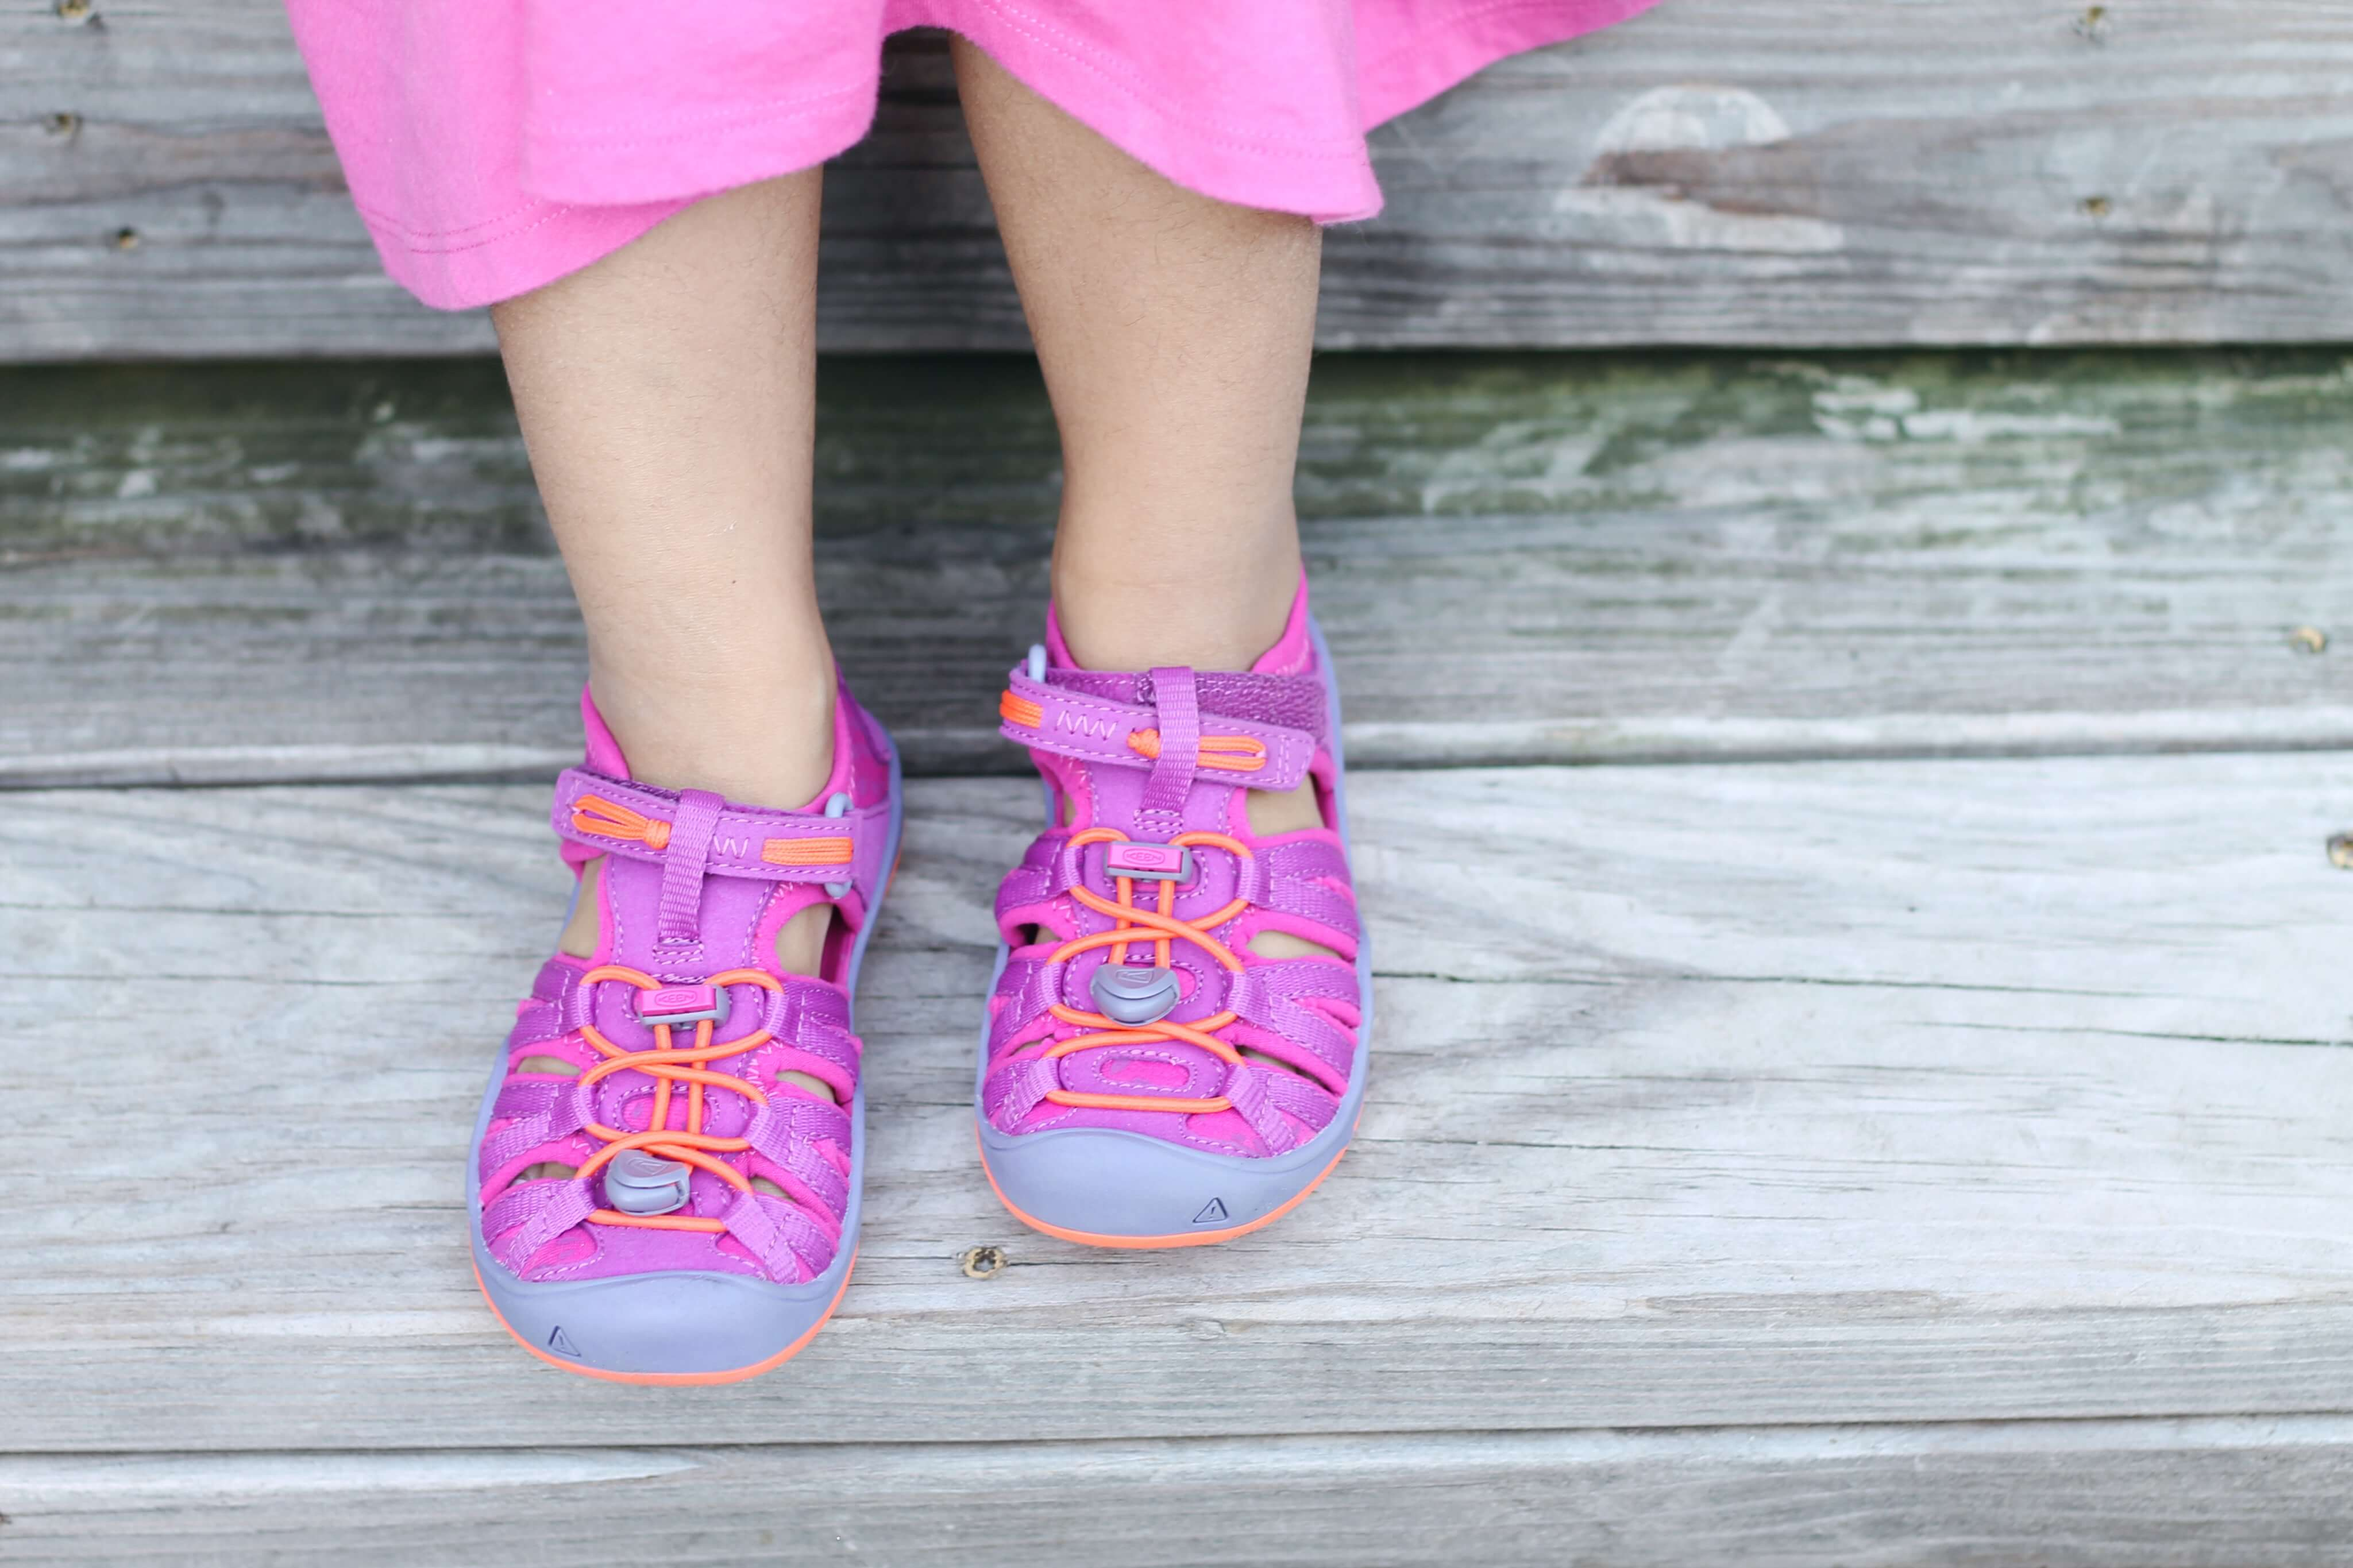 Keen Moxie sandals. The perfect summer shoe for kids!